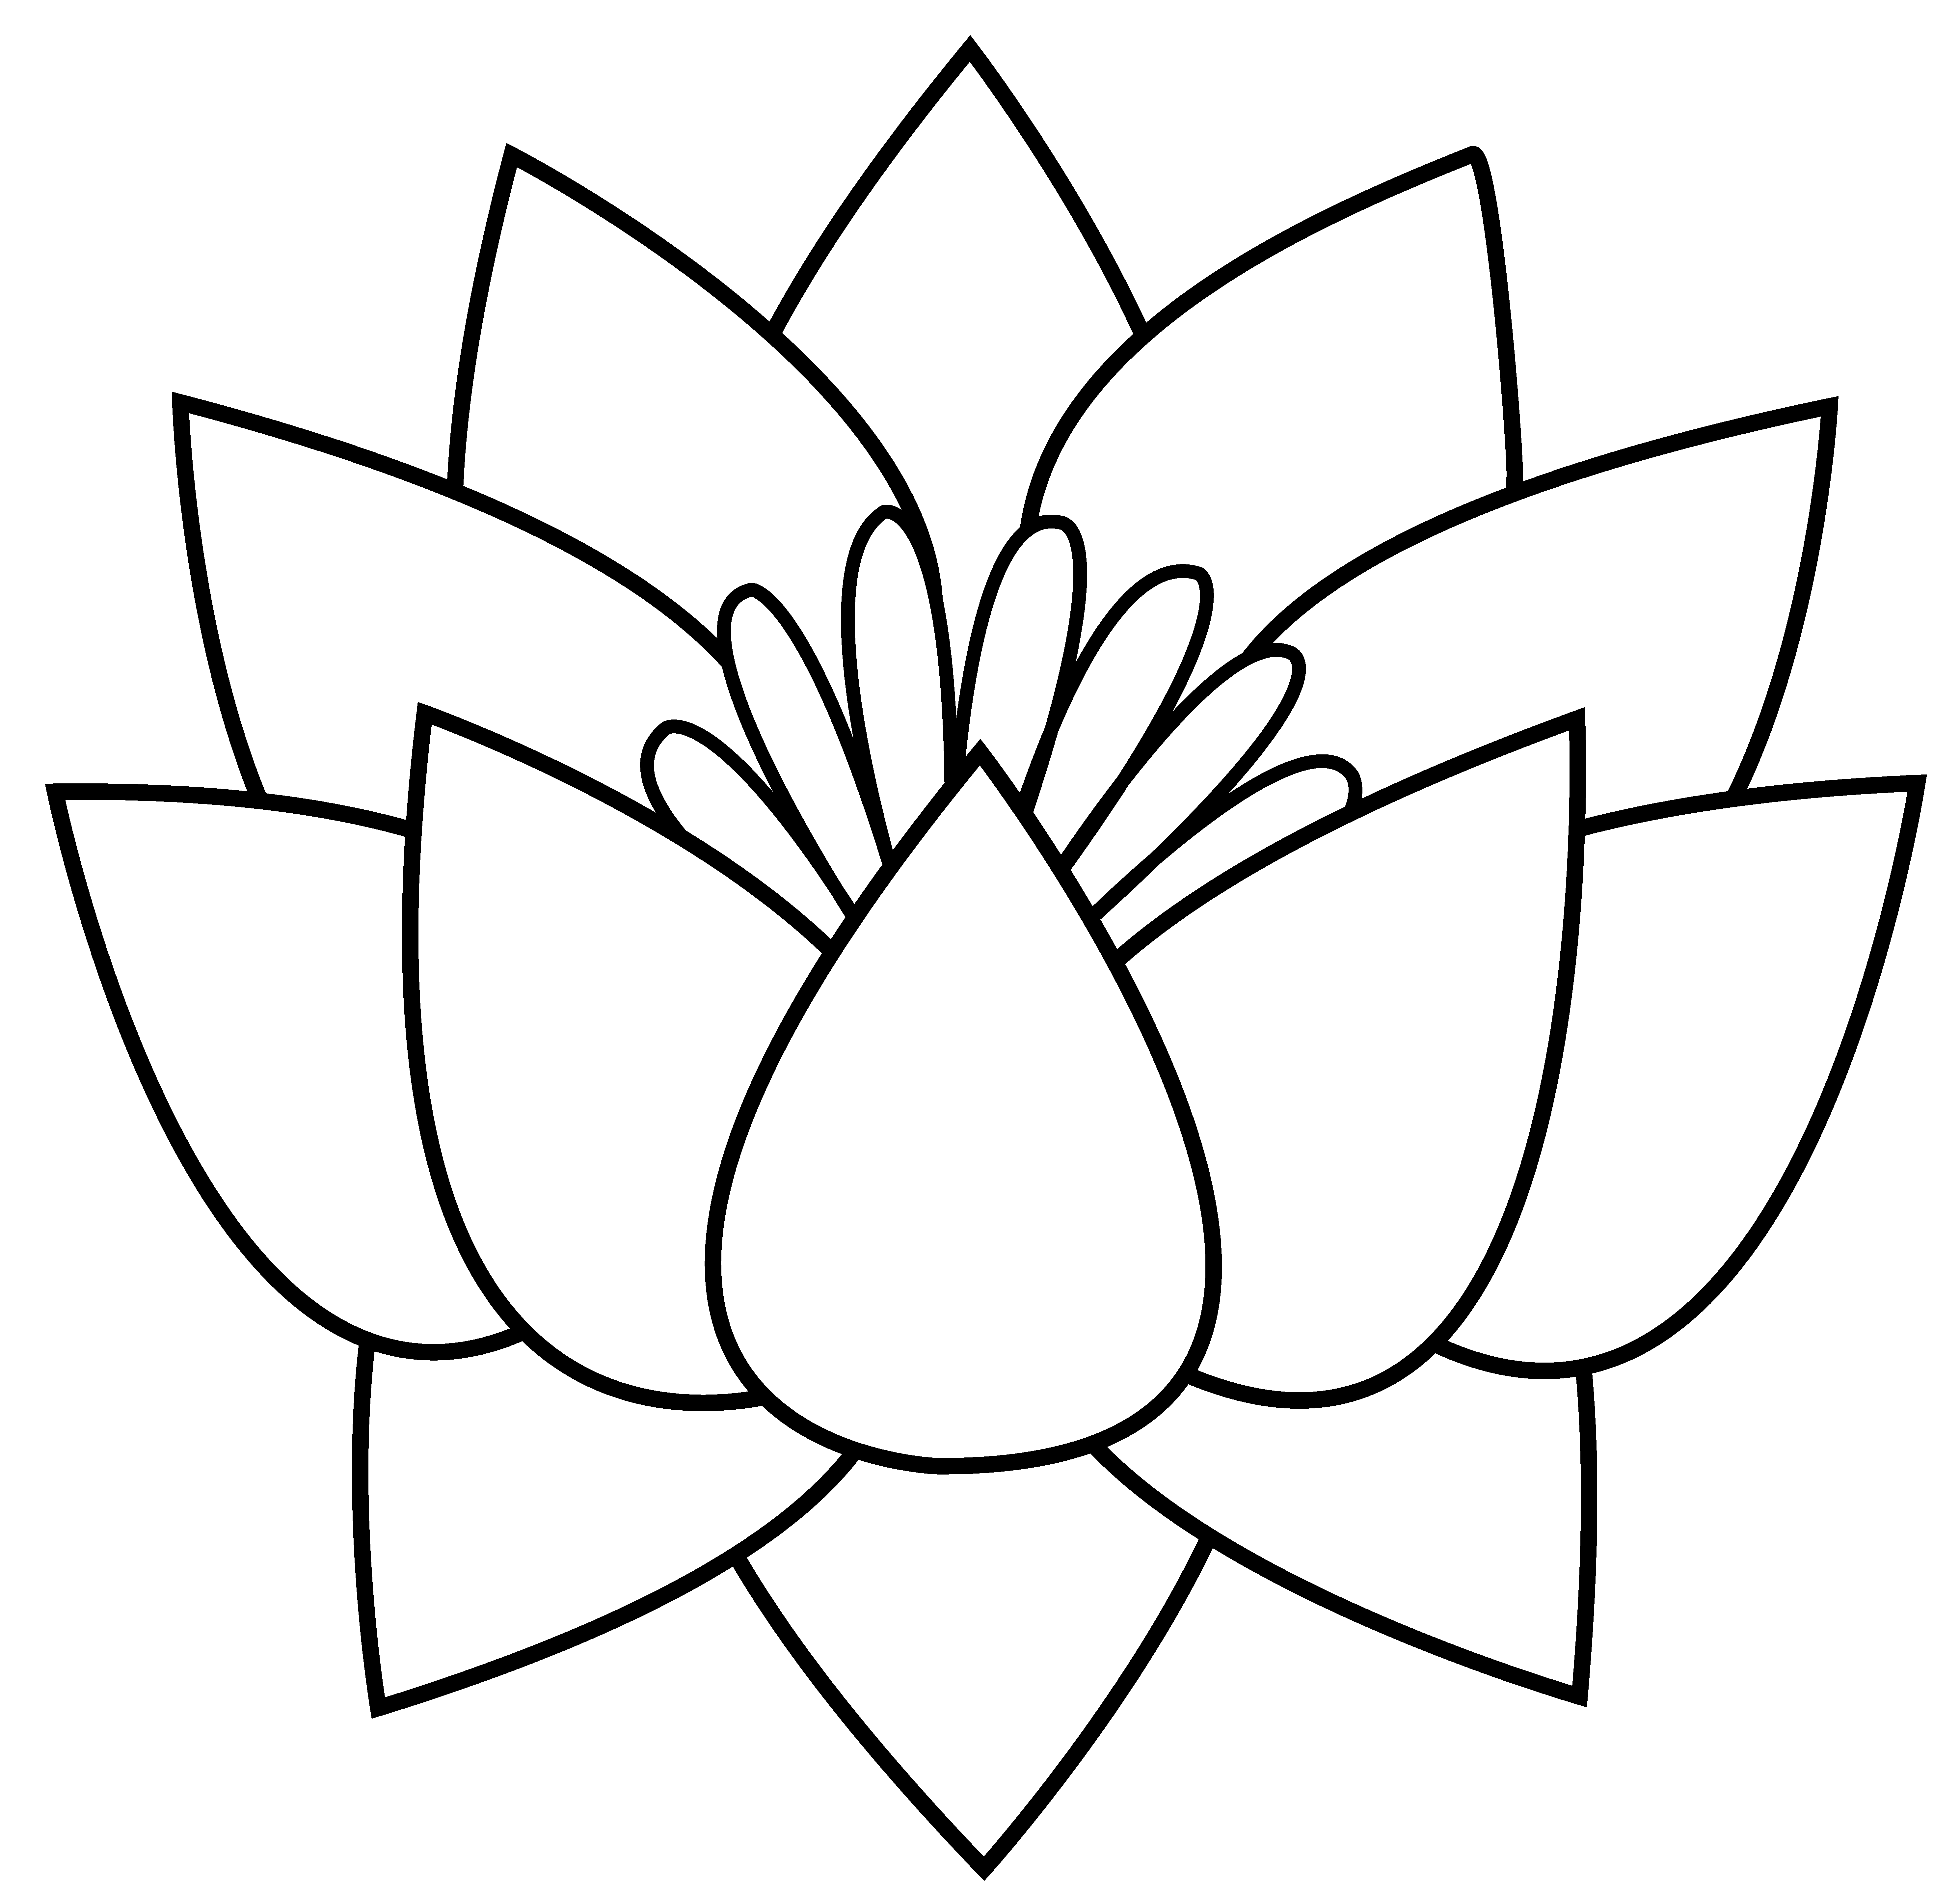 Flower Outline Drawing : Lotus flower line drawing cliparts